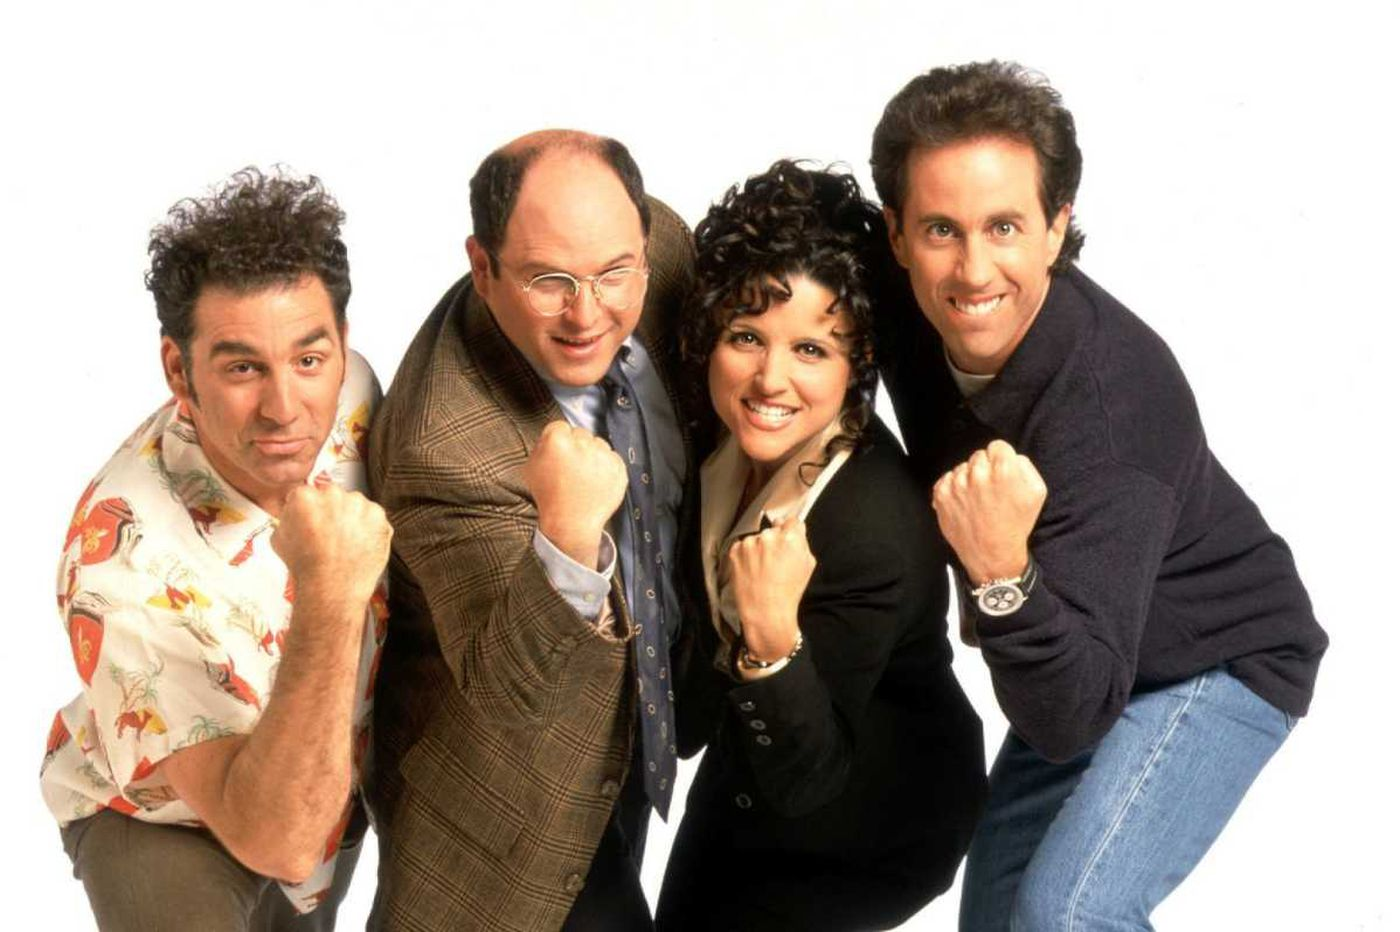 'Seinfeld' Quizzo, 'Delco Proper' comedy and 13 other ways to spend your weekend, Dec. 23-25